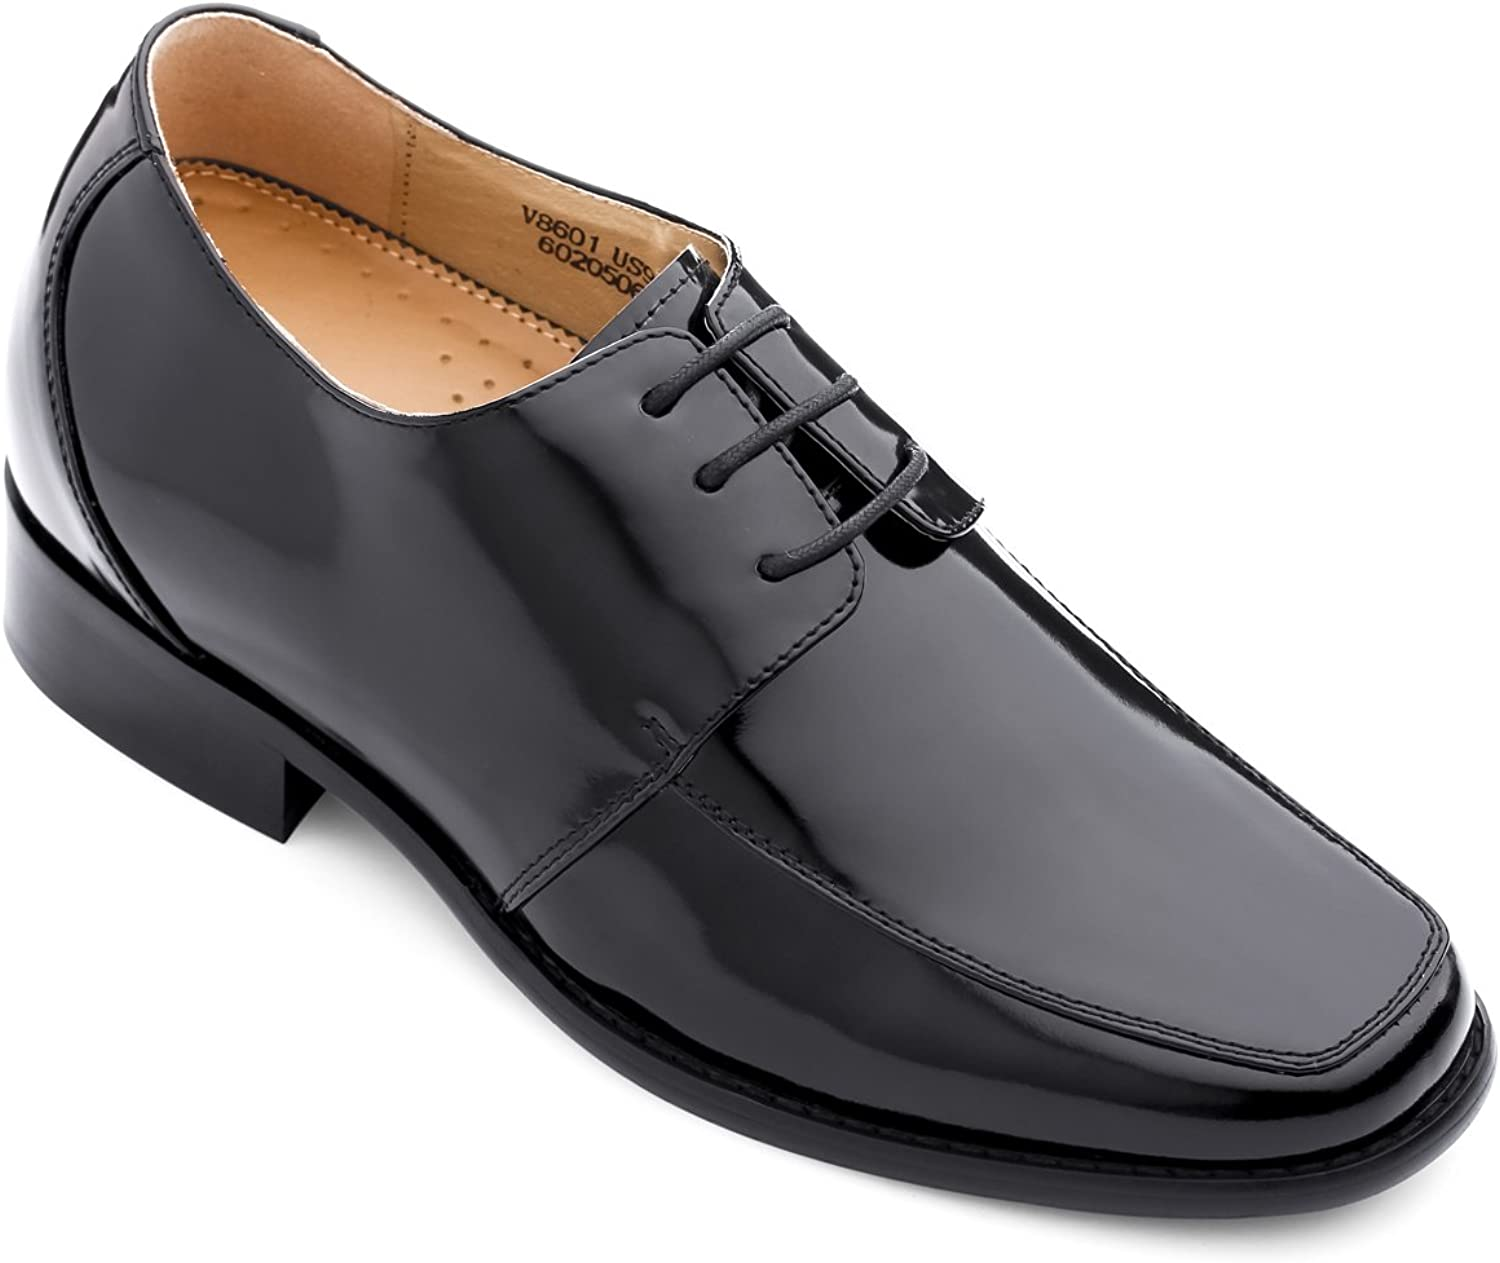 TOTO - V8601 - 2.8 Inches Taller - Height Increasing Elevator shoes - Black Leather Semi-square Toe Dress shoes